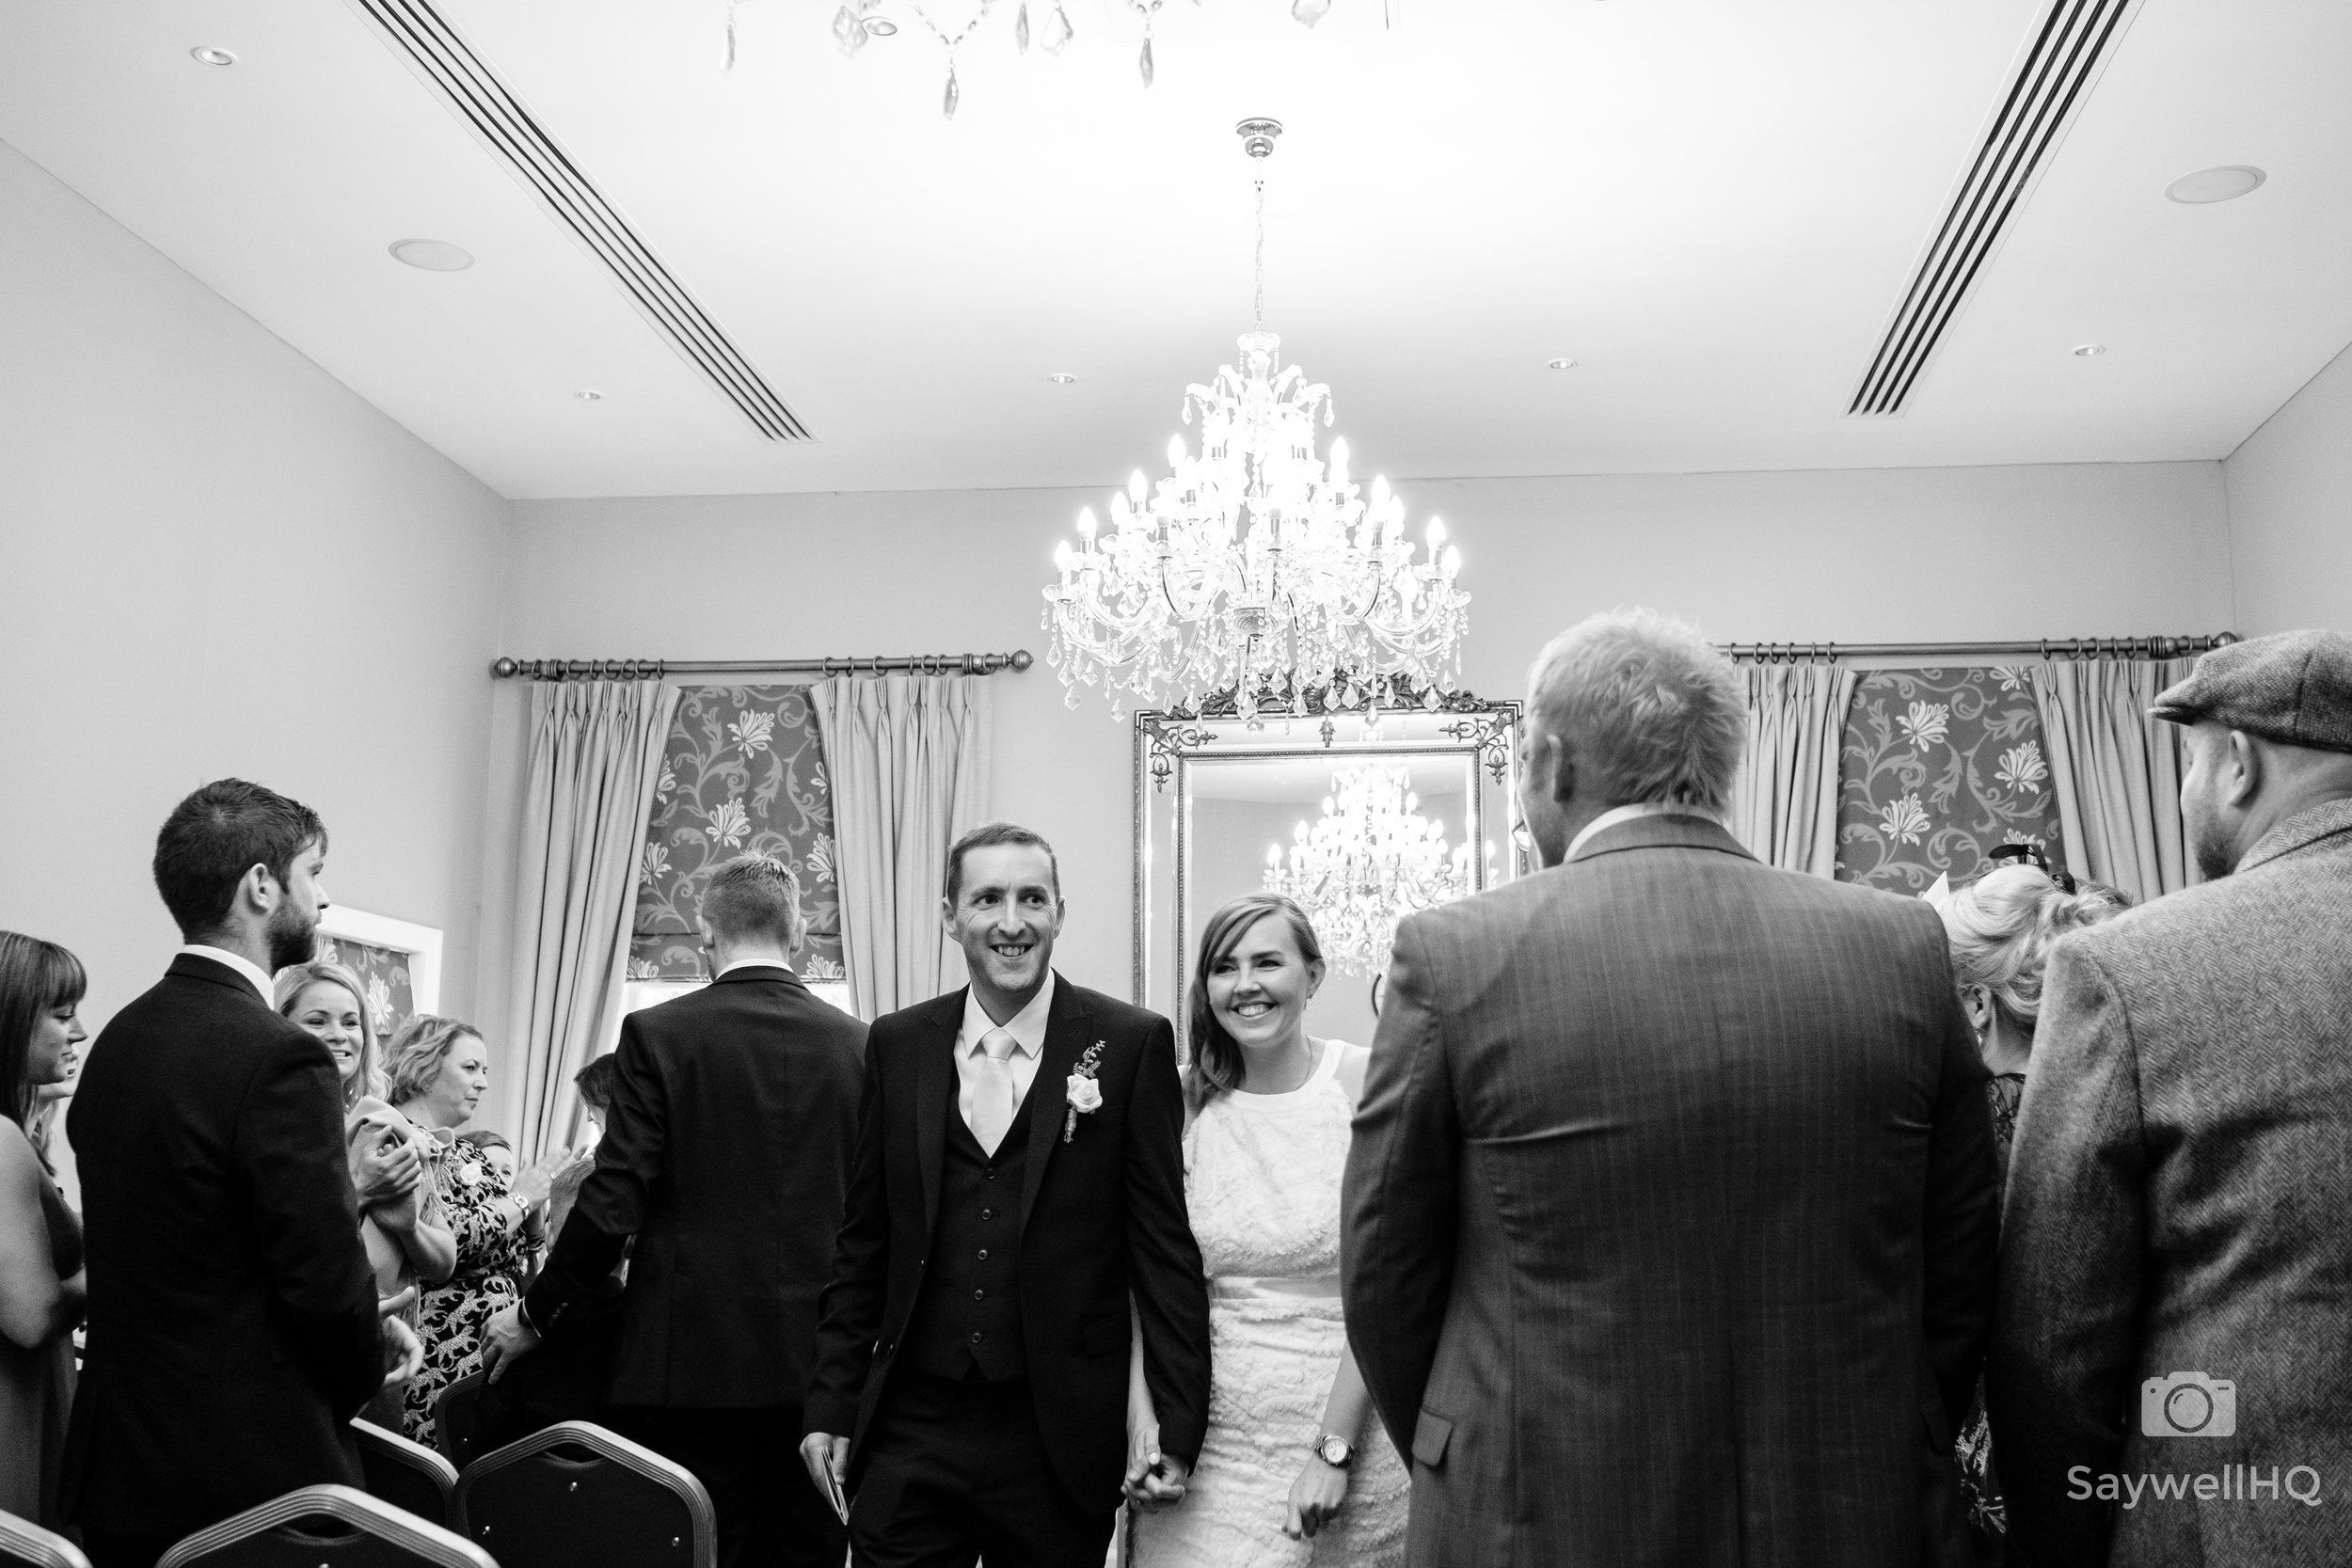 Wedding photography at Bridgford Hall - bride and groom leave the wedding room at bridgford hall in west bridgford